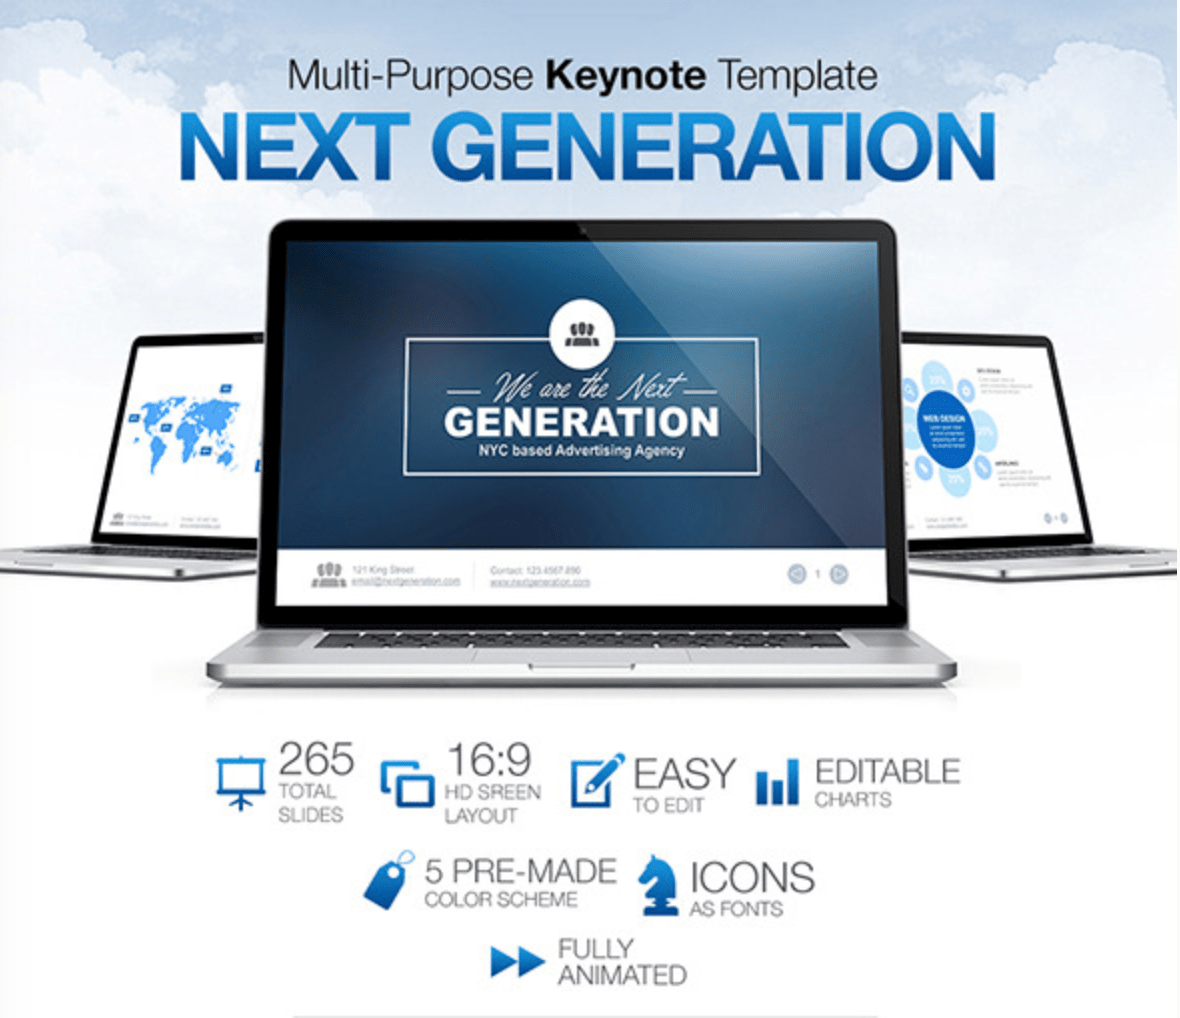 New Generation Keynote Theme